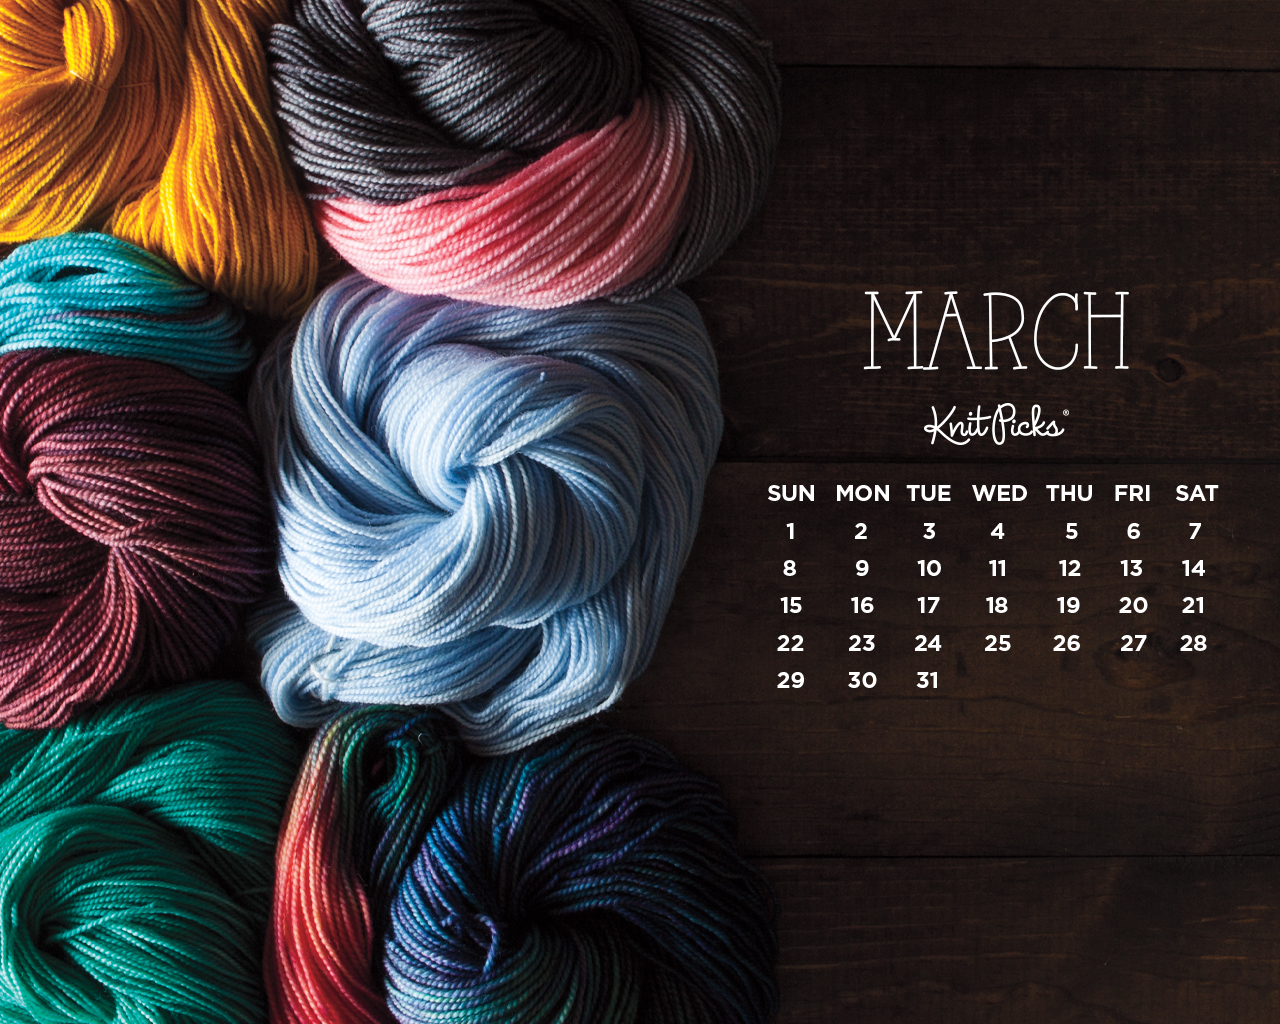 March 2015 Wallpaper Calendar   KnitPicks Staff Knitting Blog 1280x1024